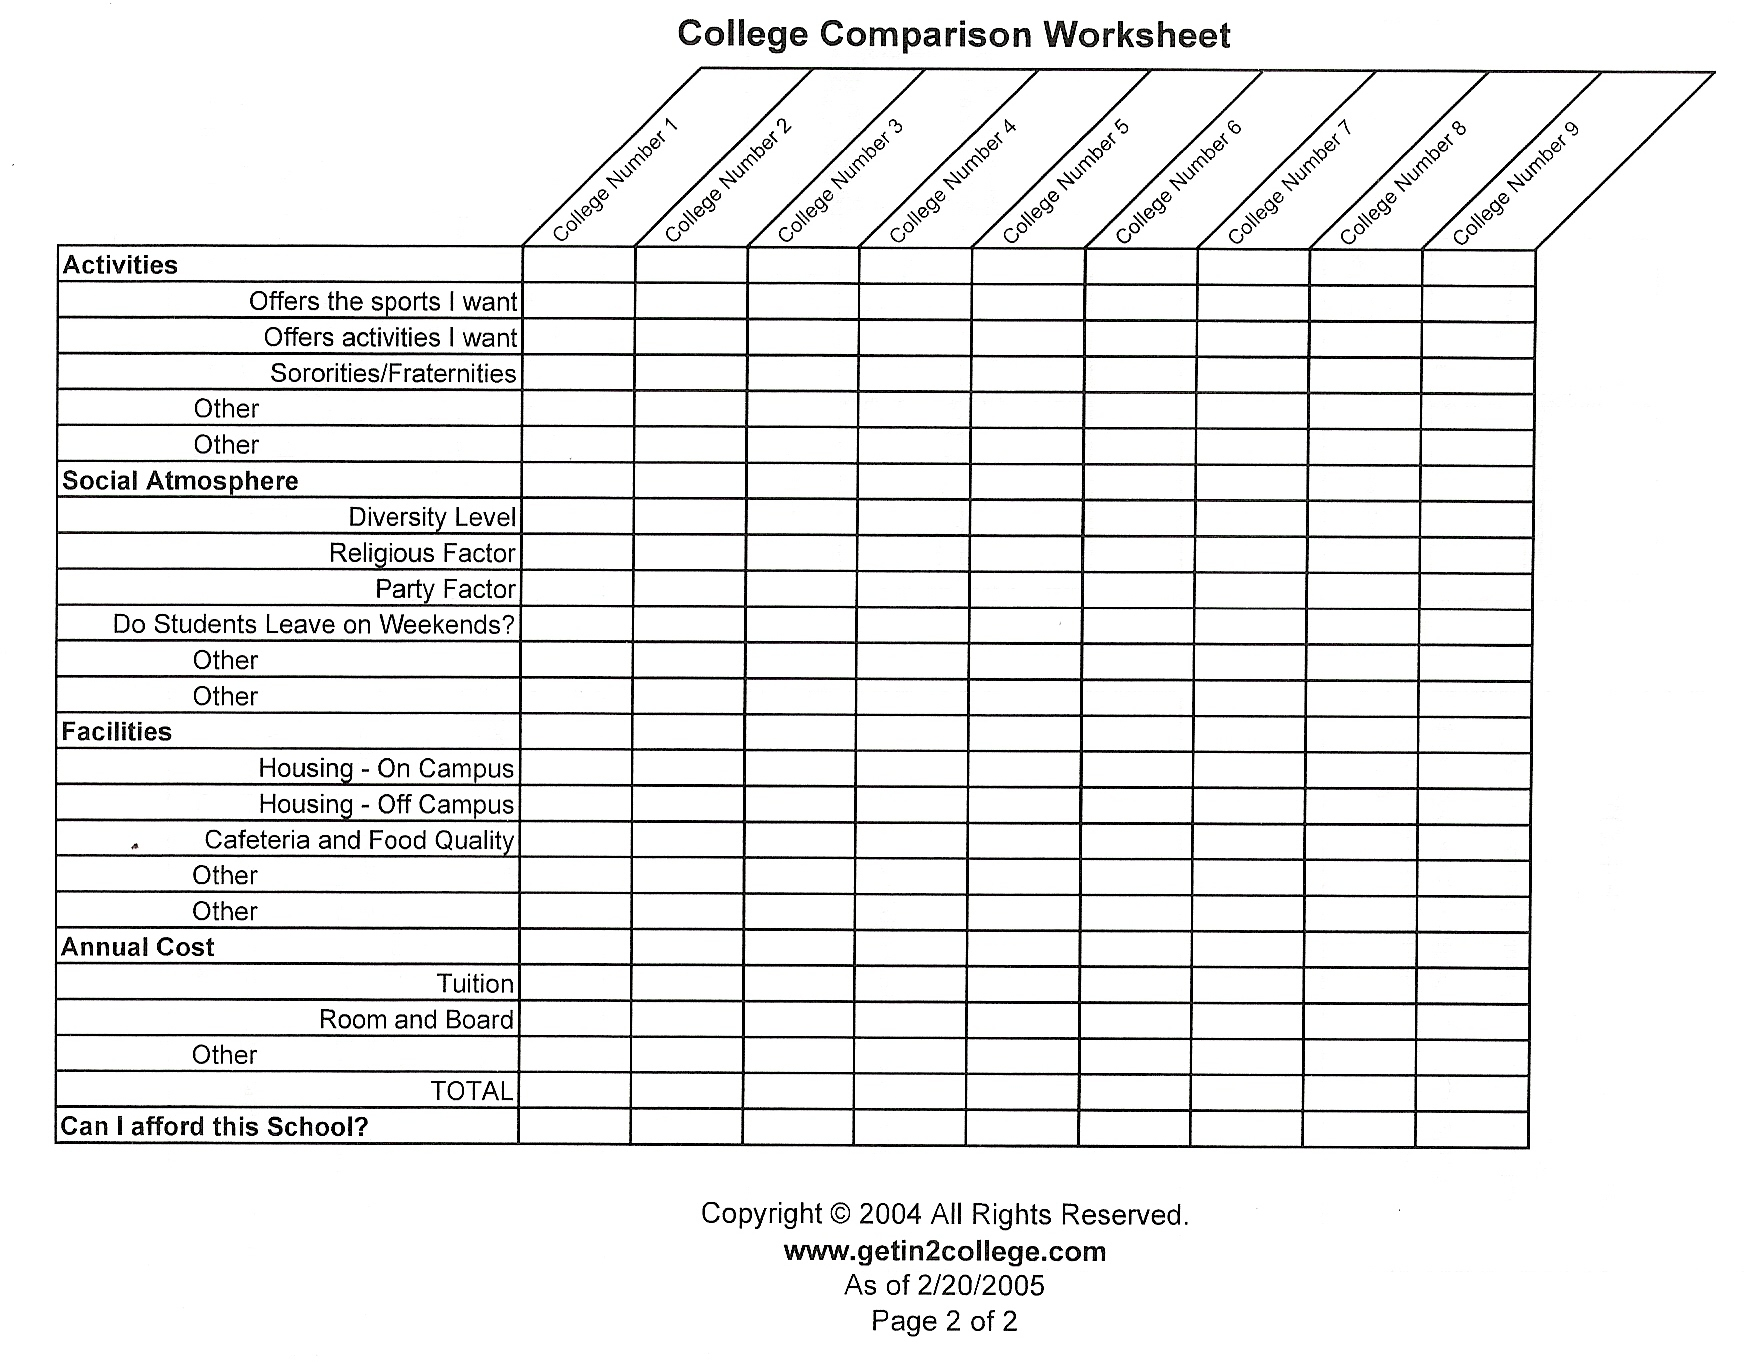 Worksheets College Cost Worksheet comparing colleges worksheet karibunicollies college cost worksheets newsofthewired thousands of